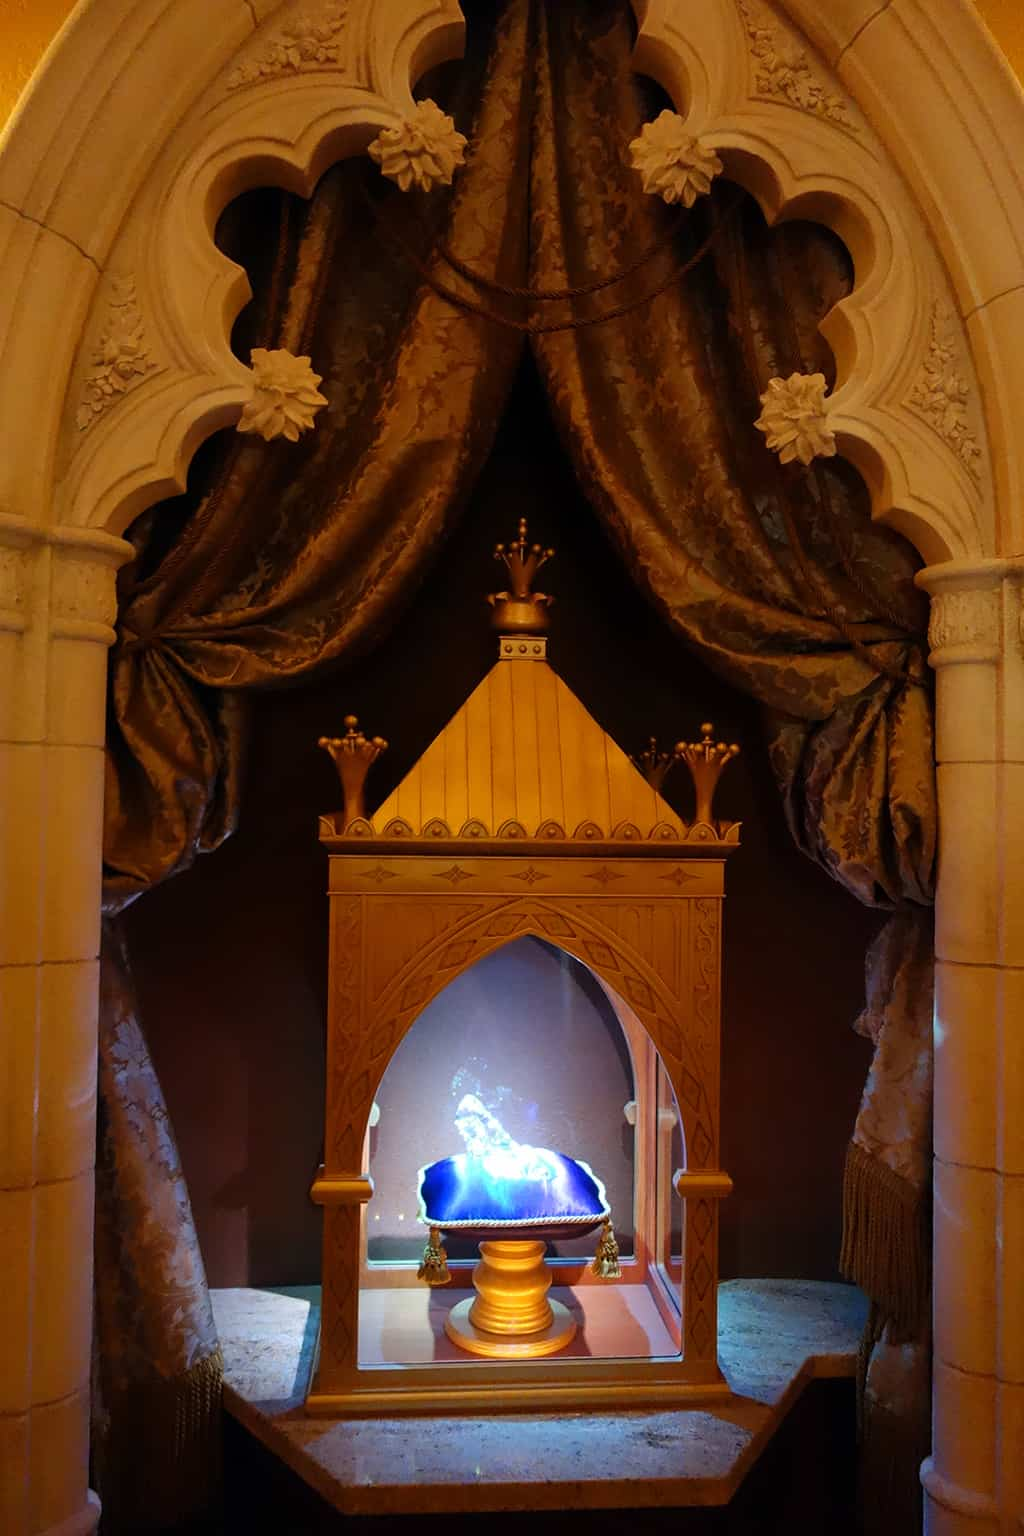 The glass slipper from the movie Cinderella